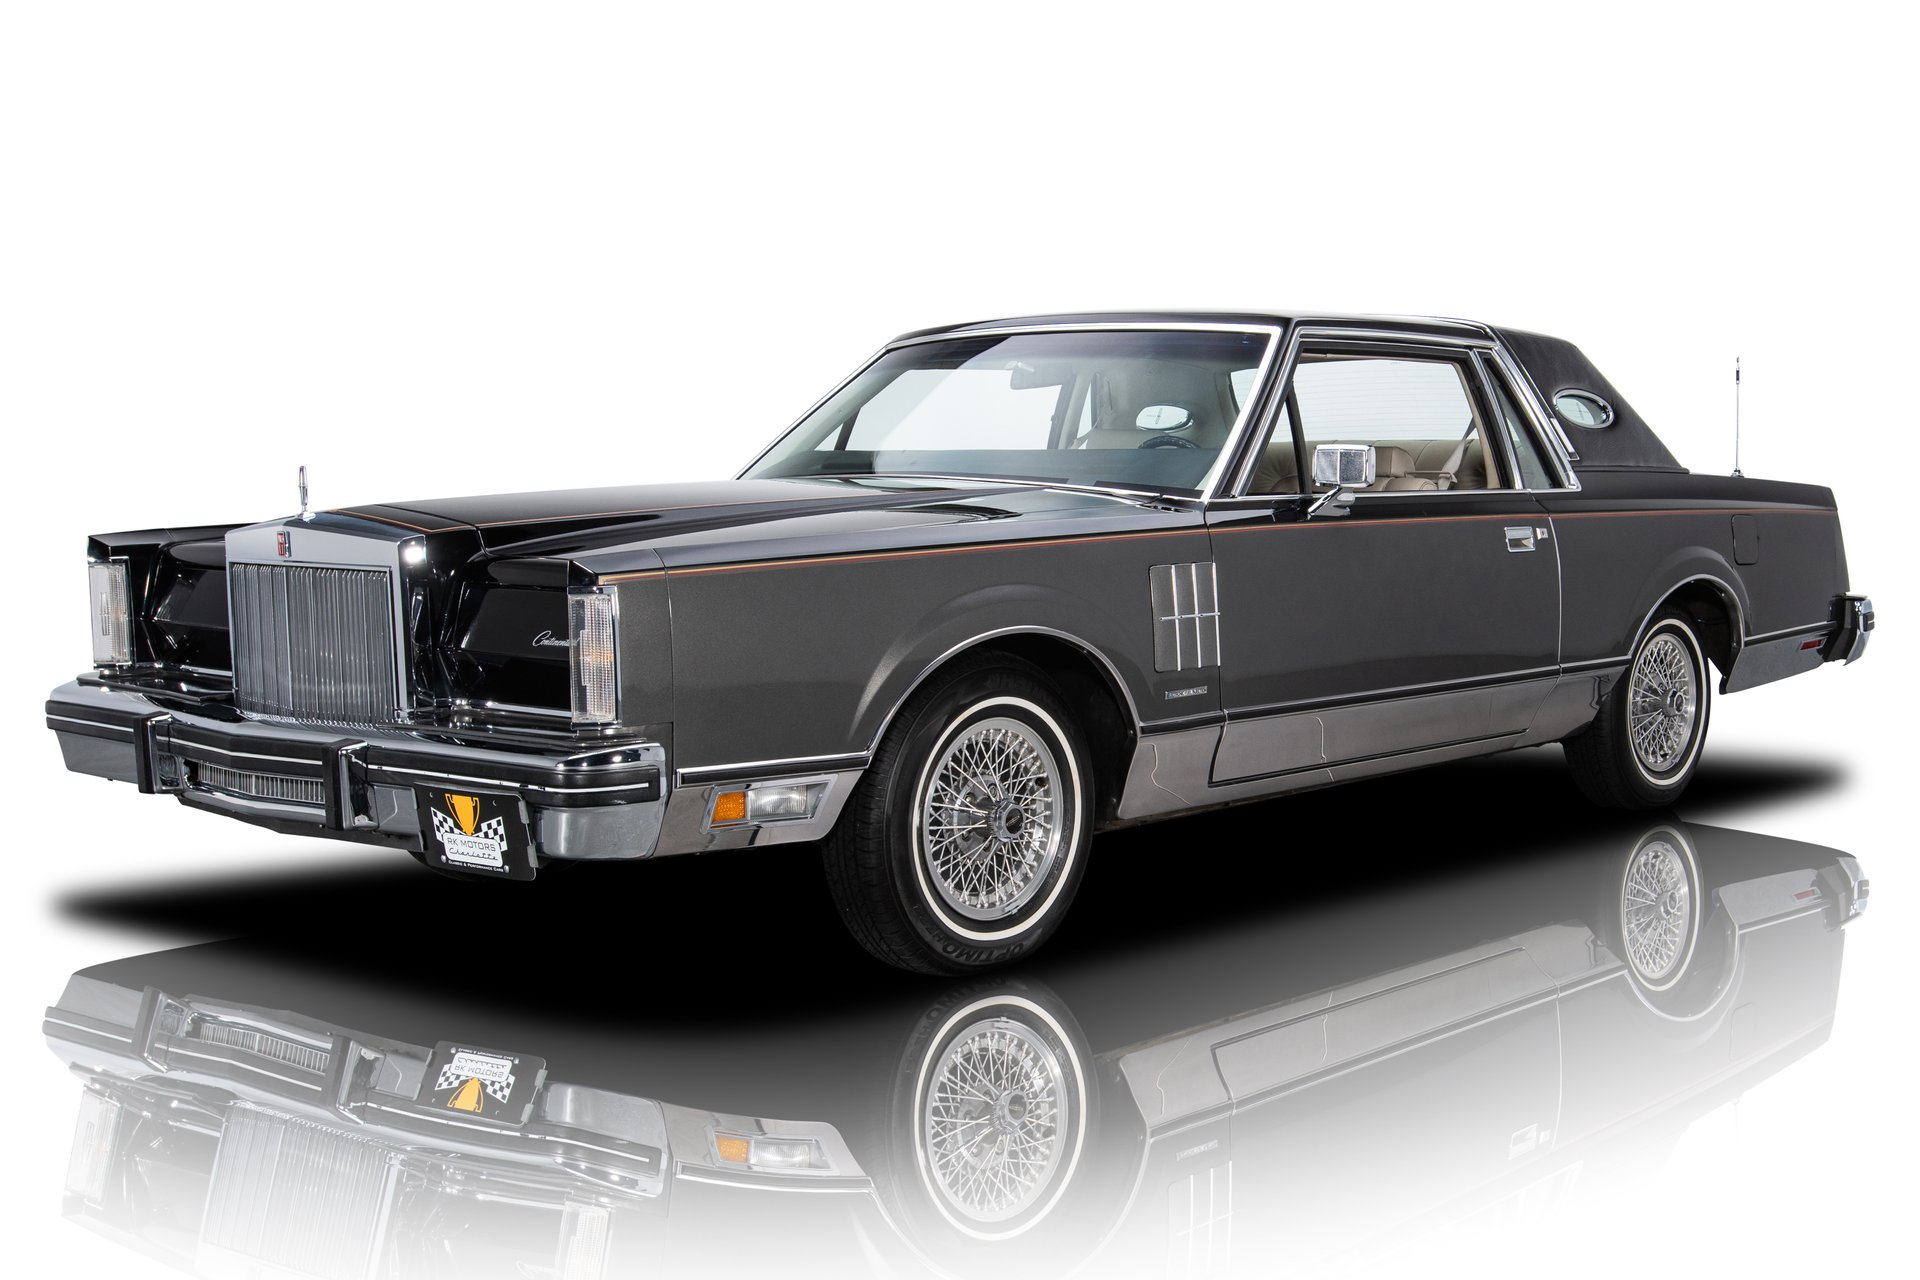 1981 lincoln mark vi givenchy edition